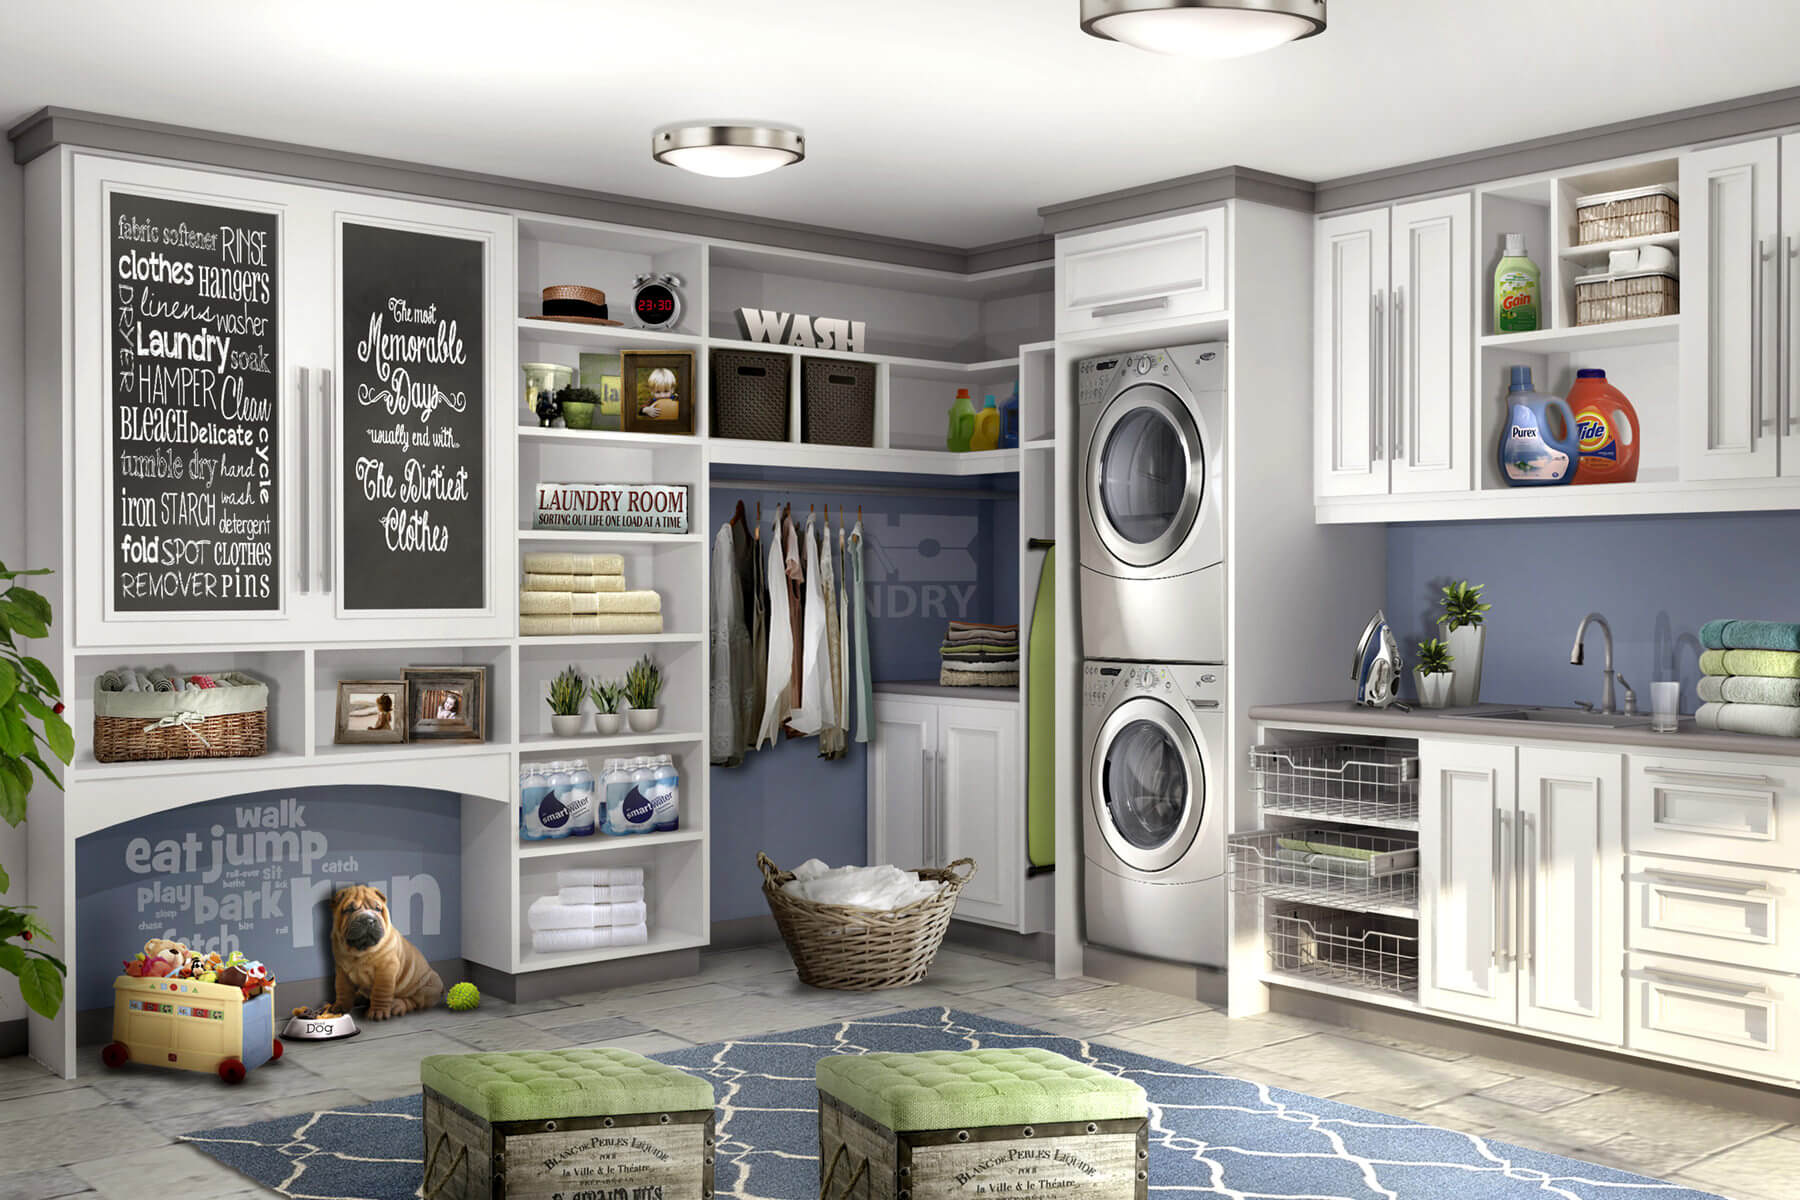 Gorgeous laundry room design with storage and stackable washer and drier.